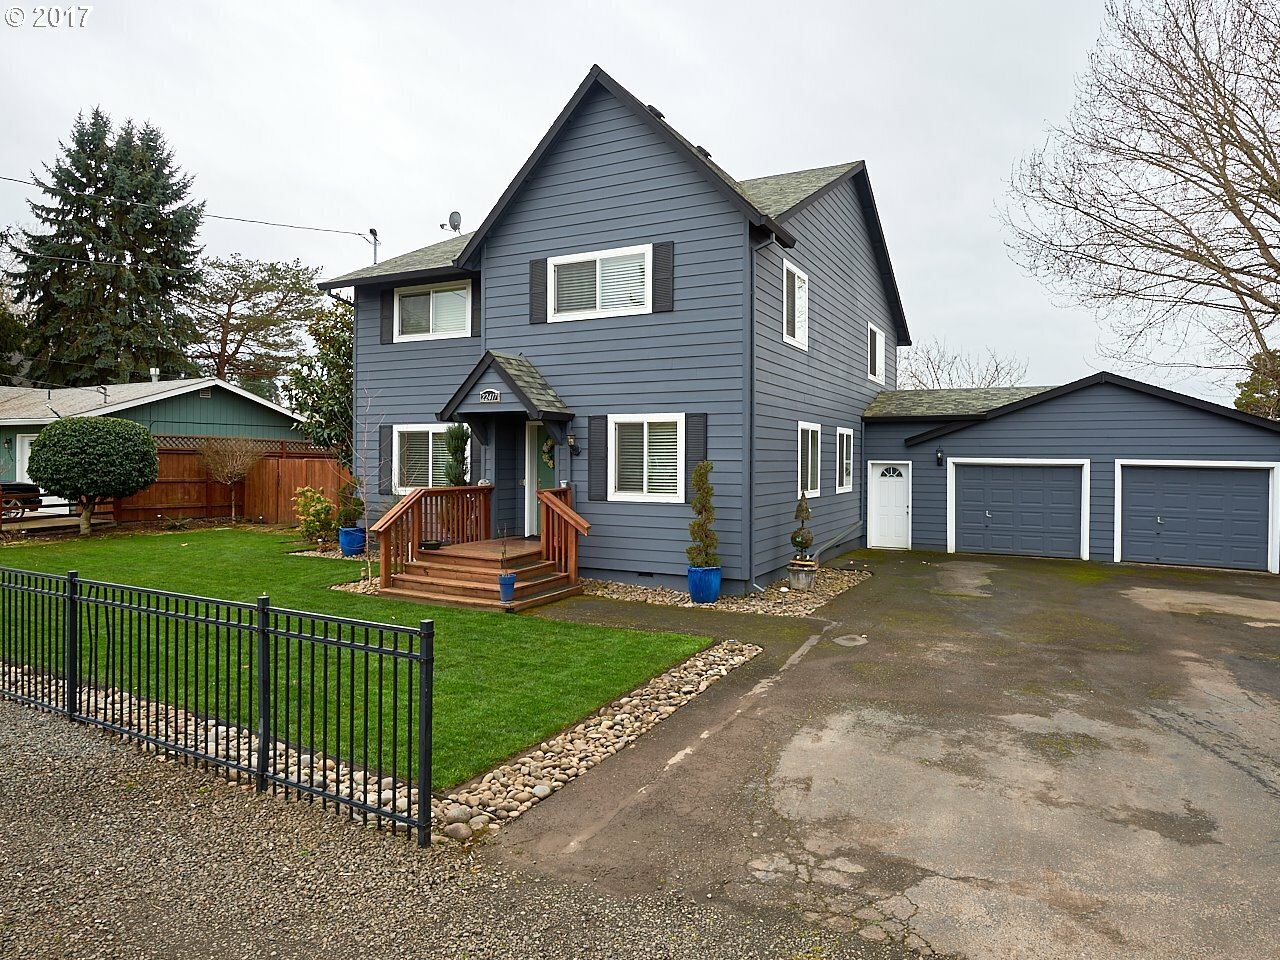 22417 Sw Lincoln St, Sherwood, OR - USA (photo 2)